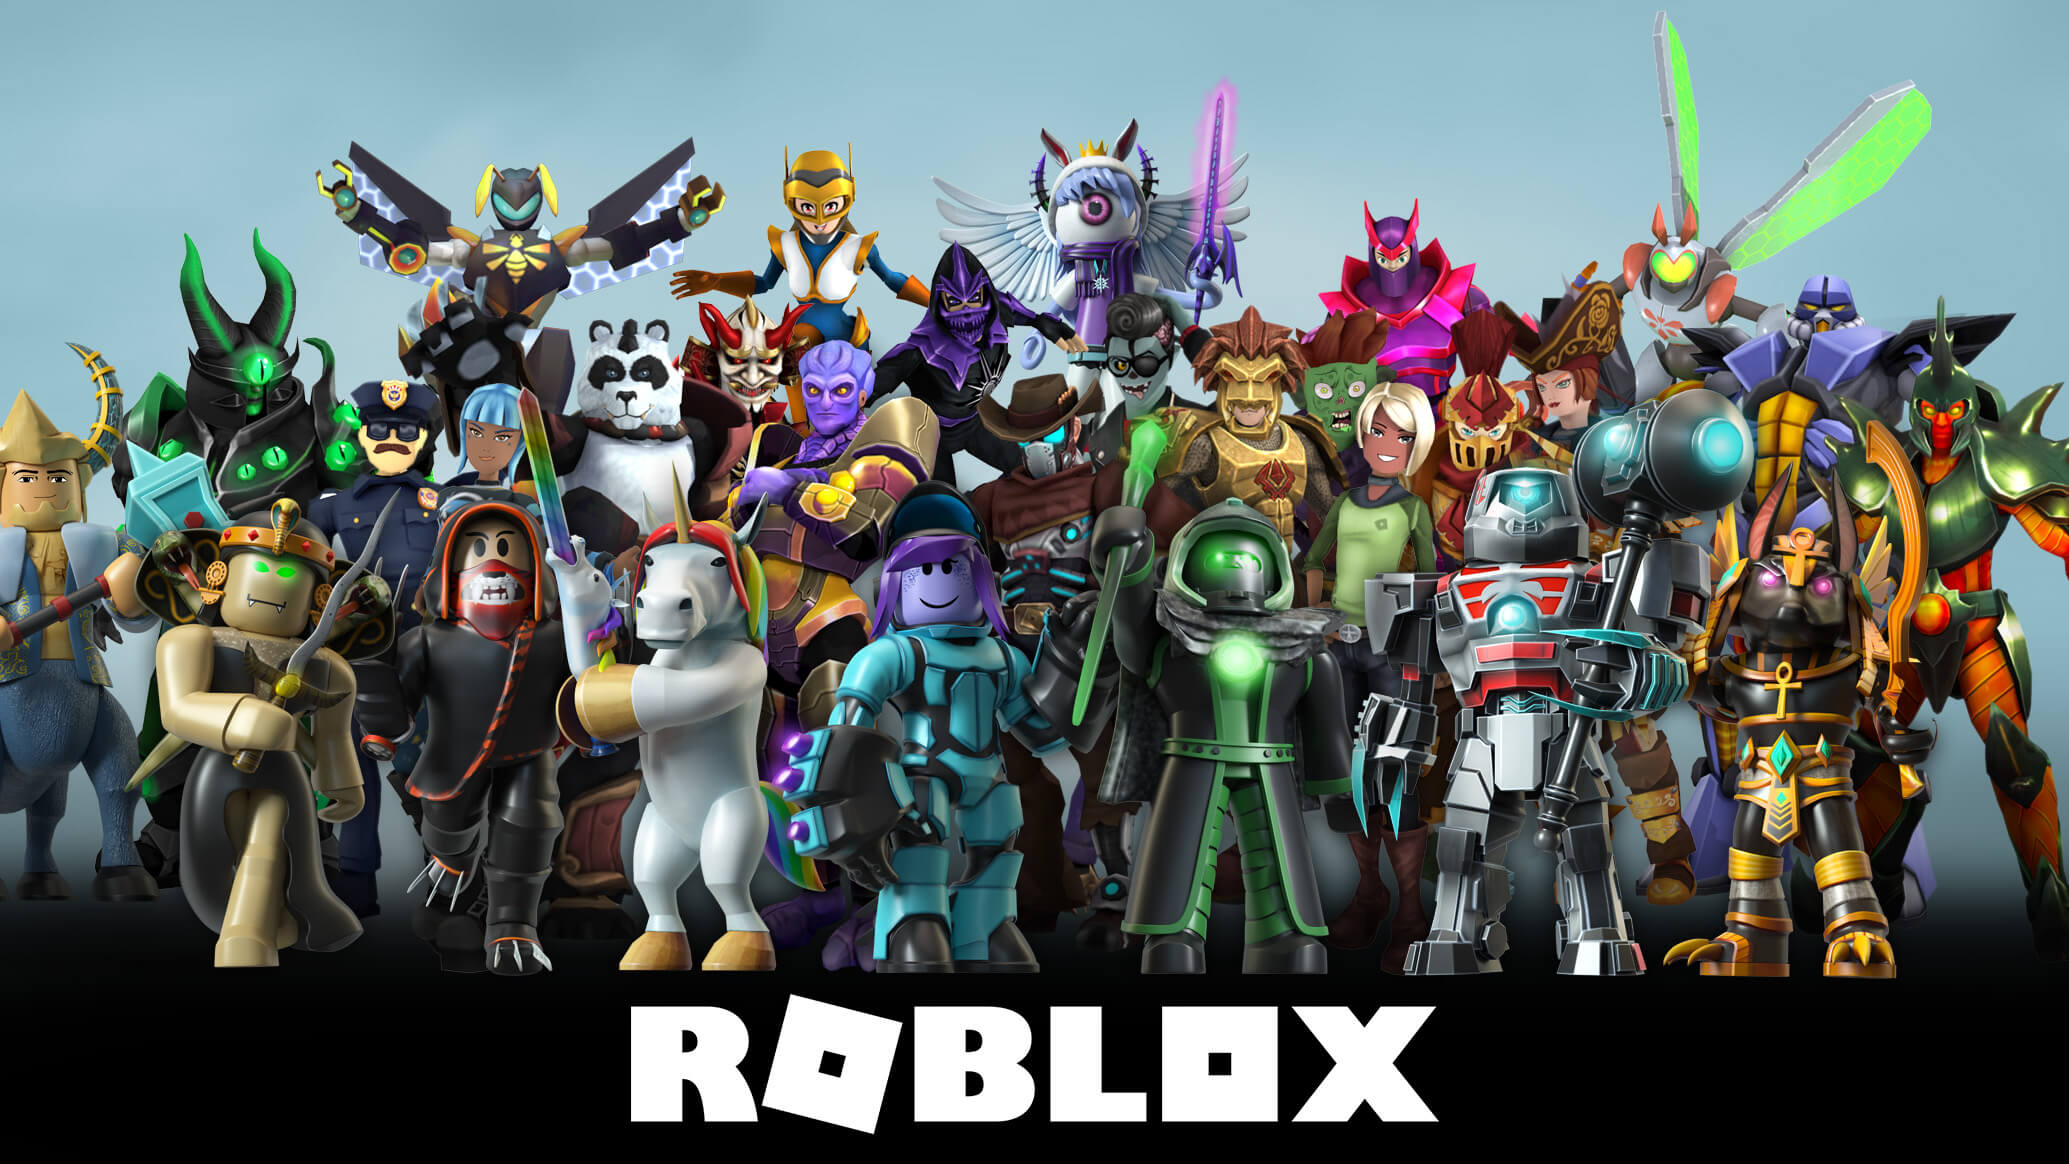 Download Roblox Apk For Free If You Can T Get Minecraft Apk Legally